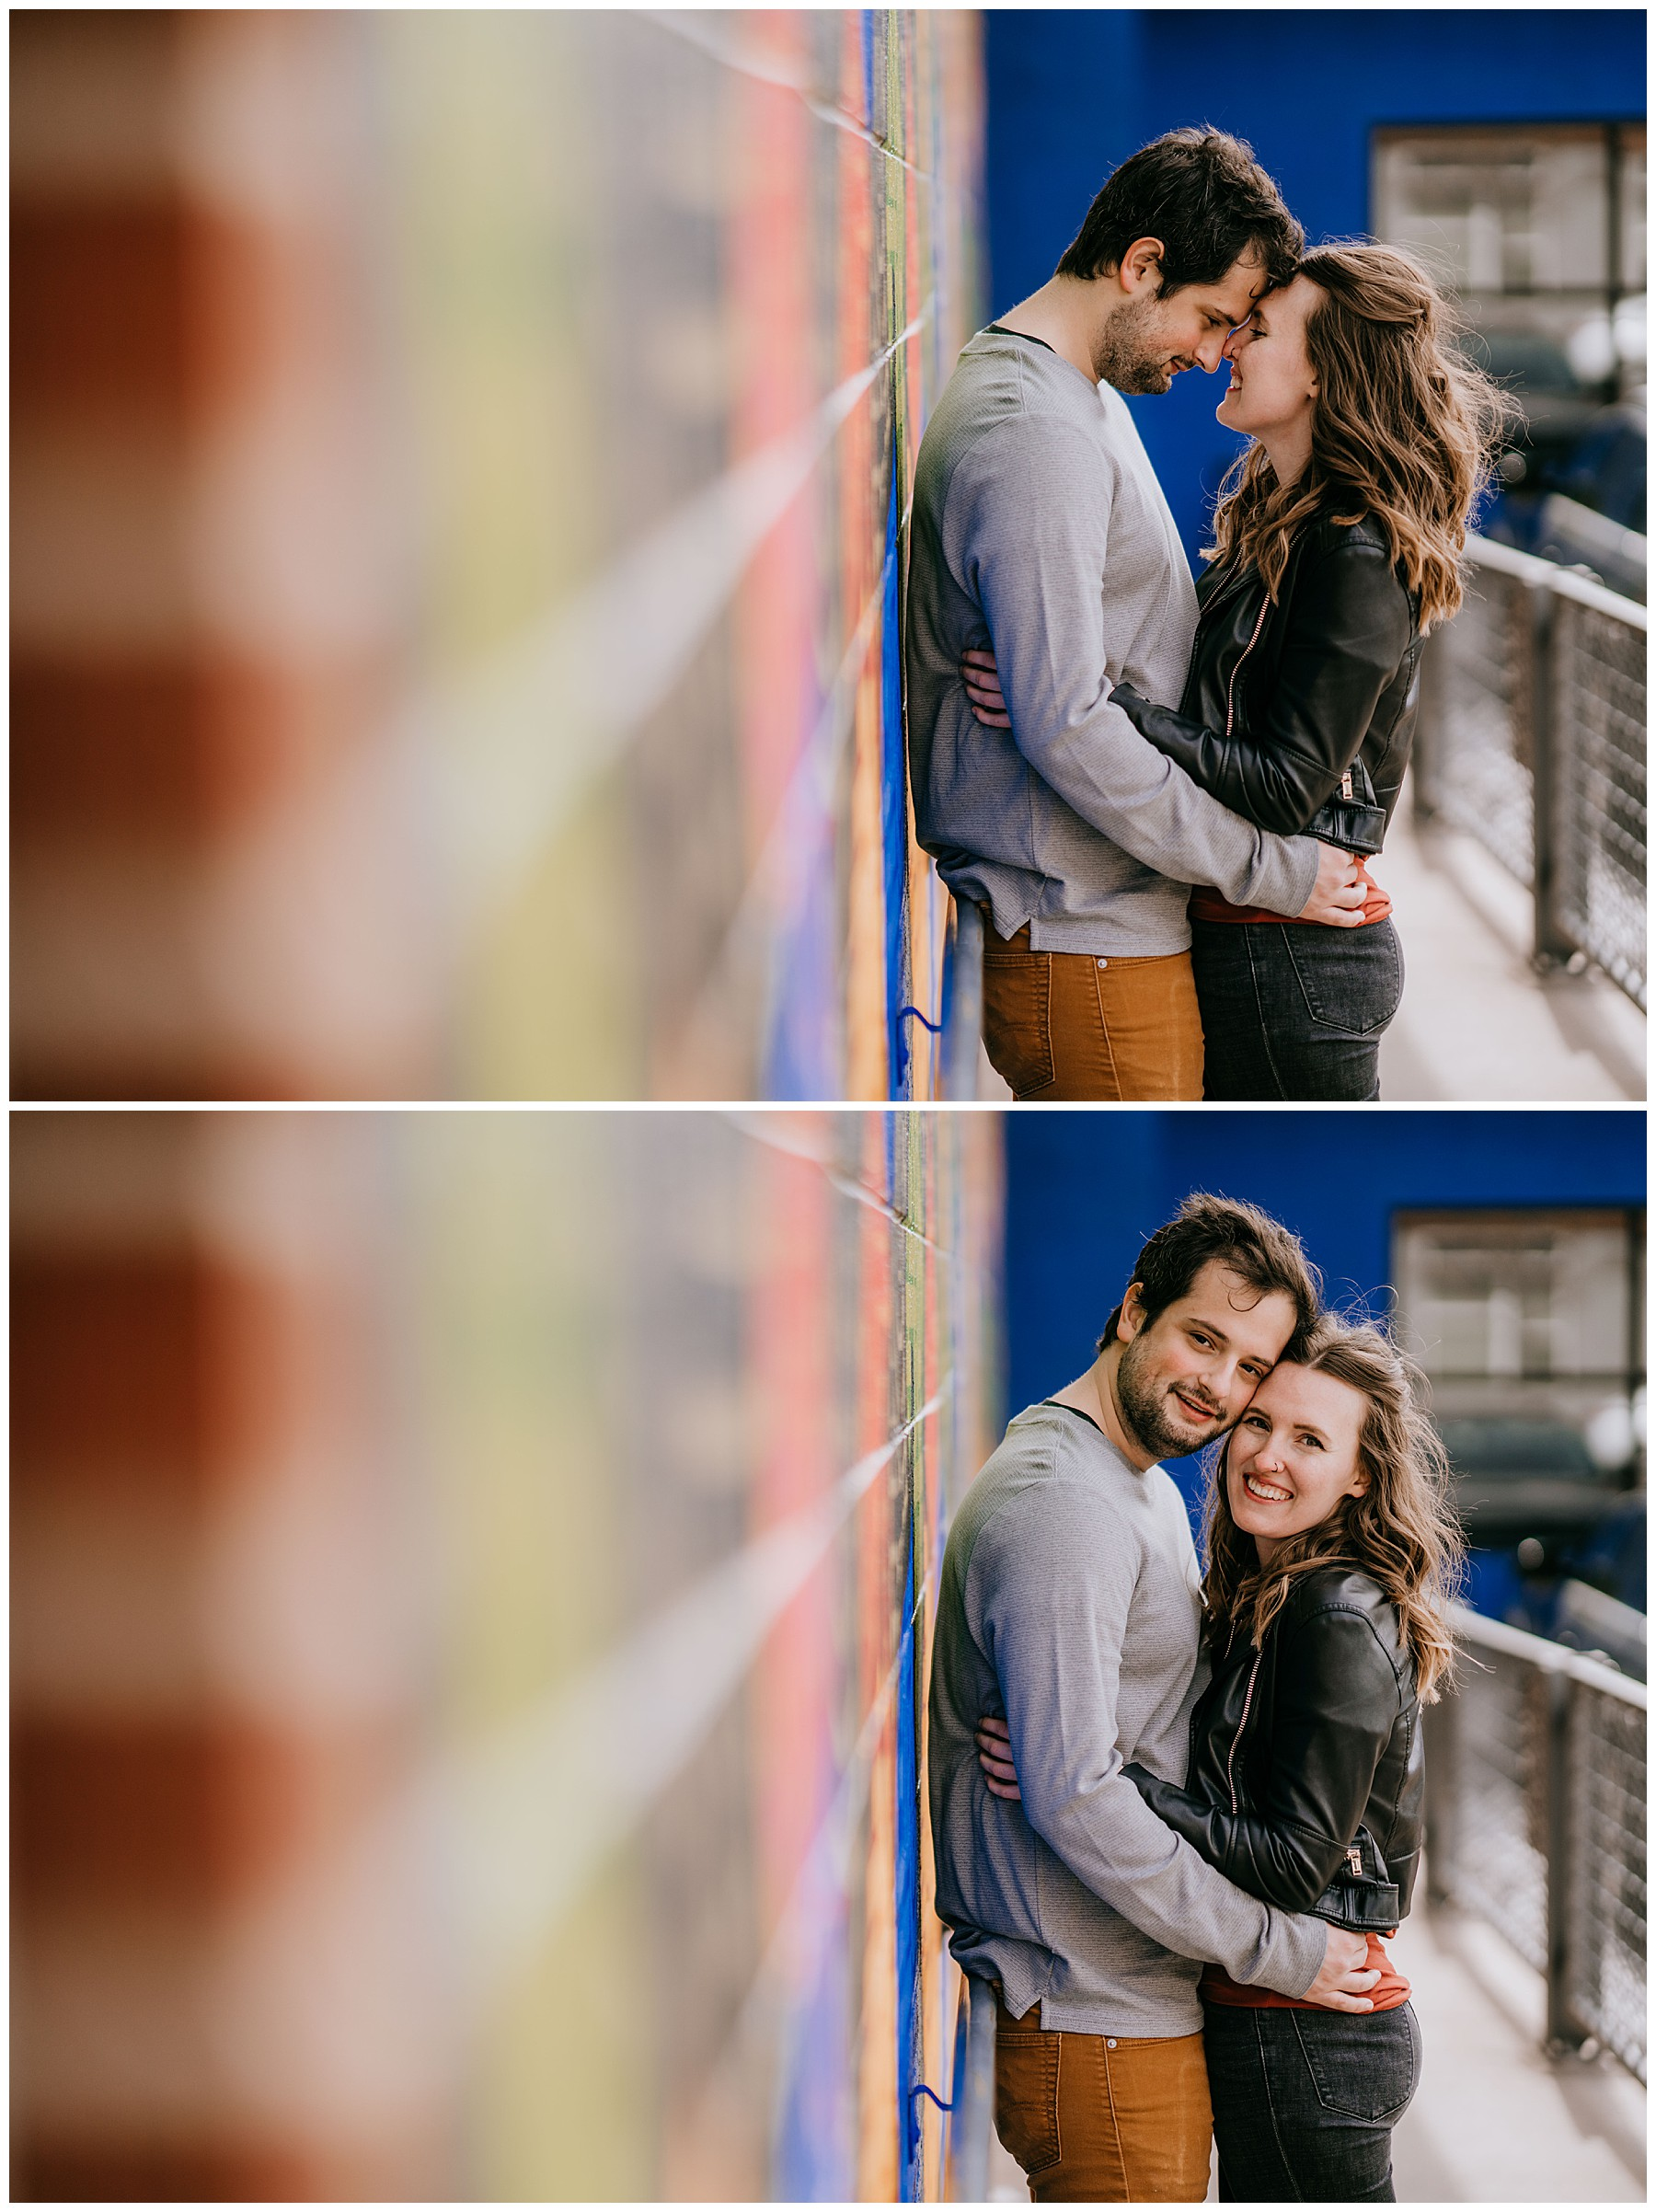 Jozie & Sam Engagement Session RiNo District Denver CO 49